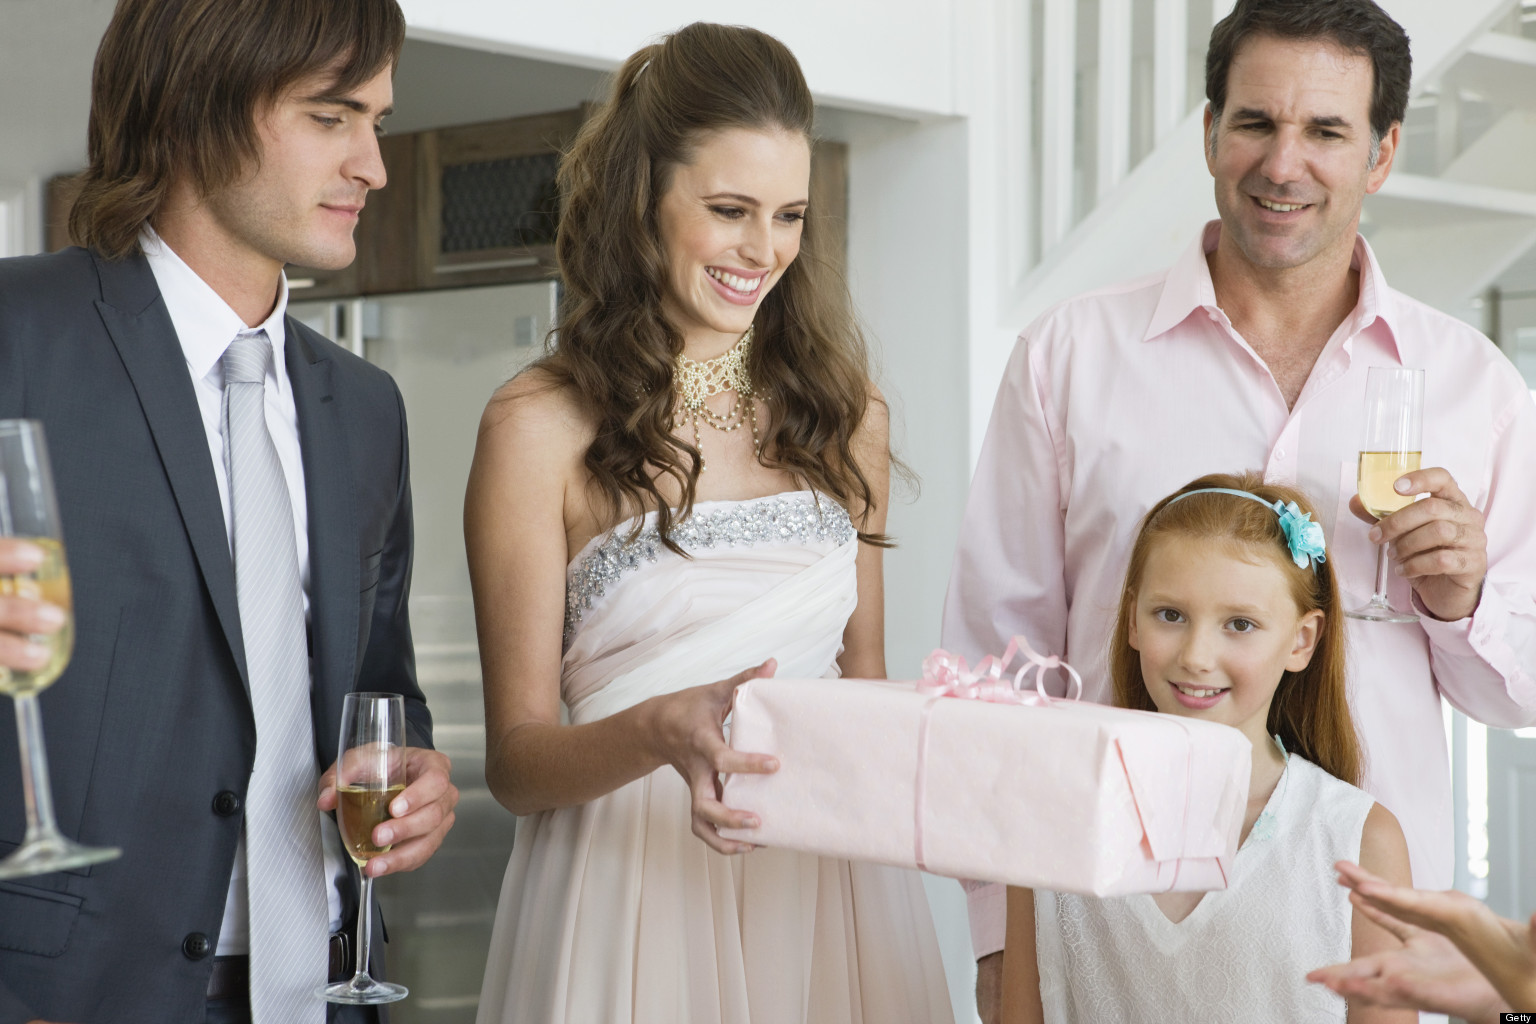 Wedding Gift Giving Etiquette Bridesmaid : Wedding Gift Etiquette: What To Give And How Much HuffPost